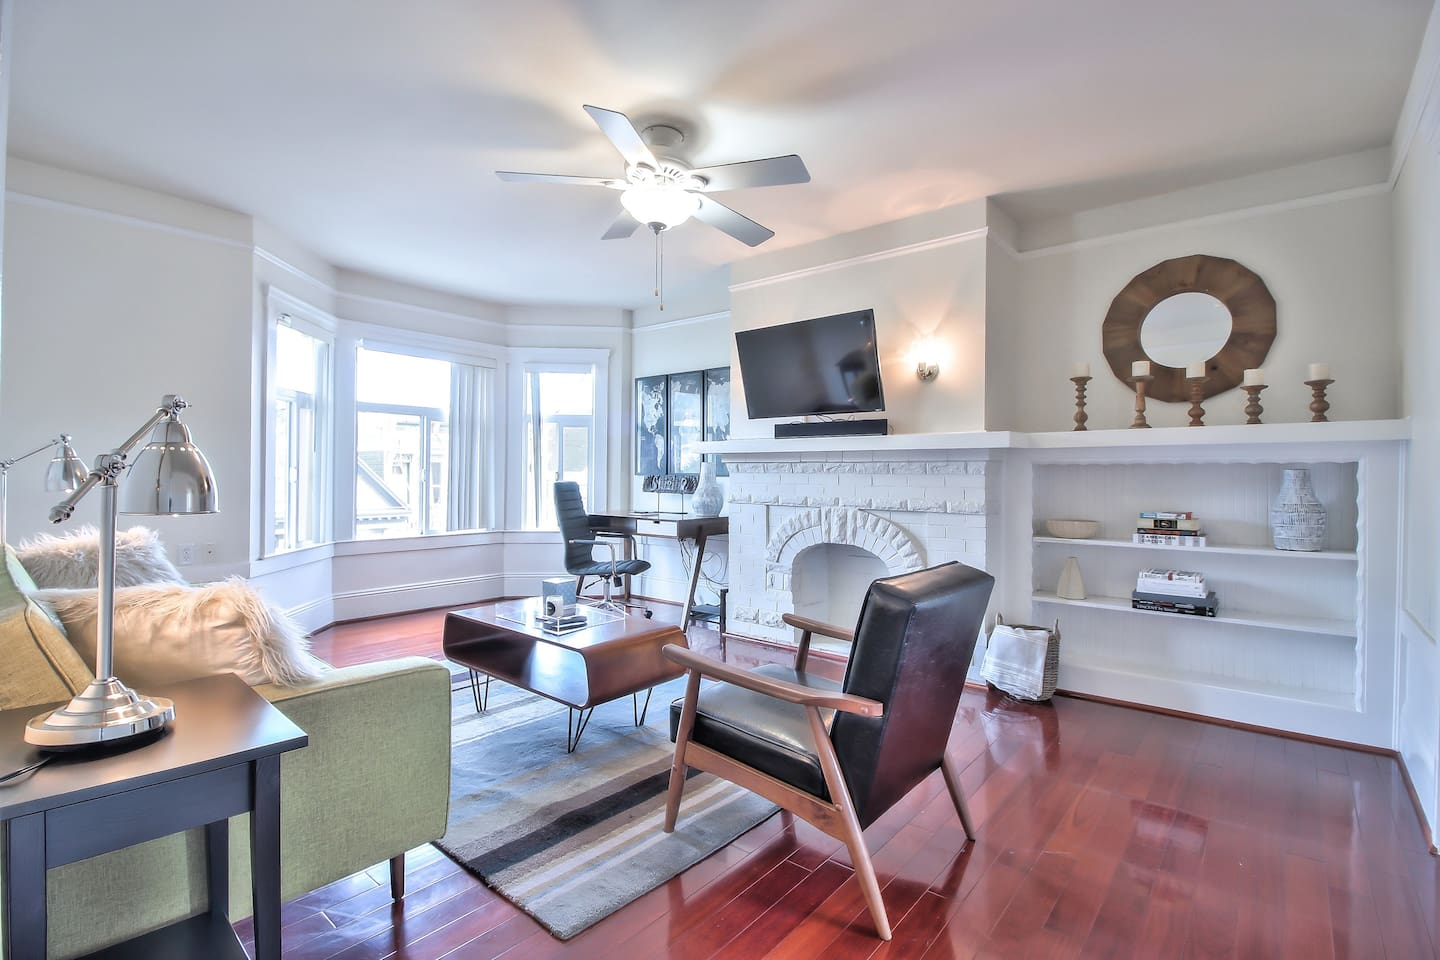 3 Bedroom Home in Lively Mission